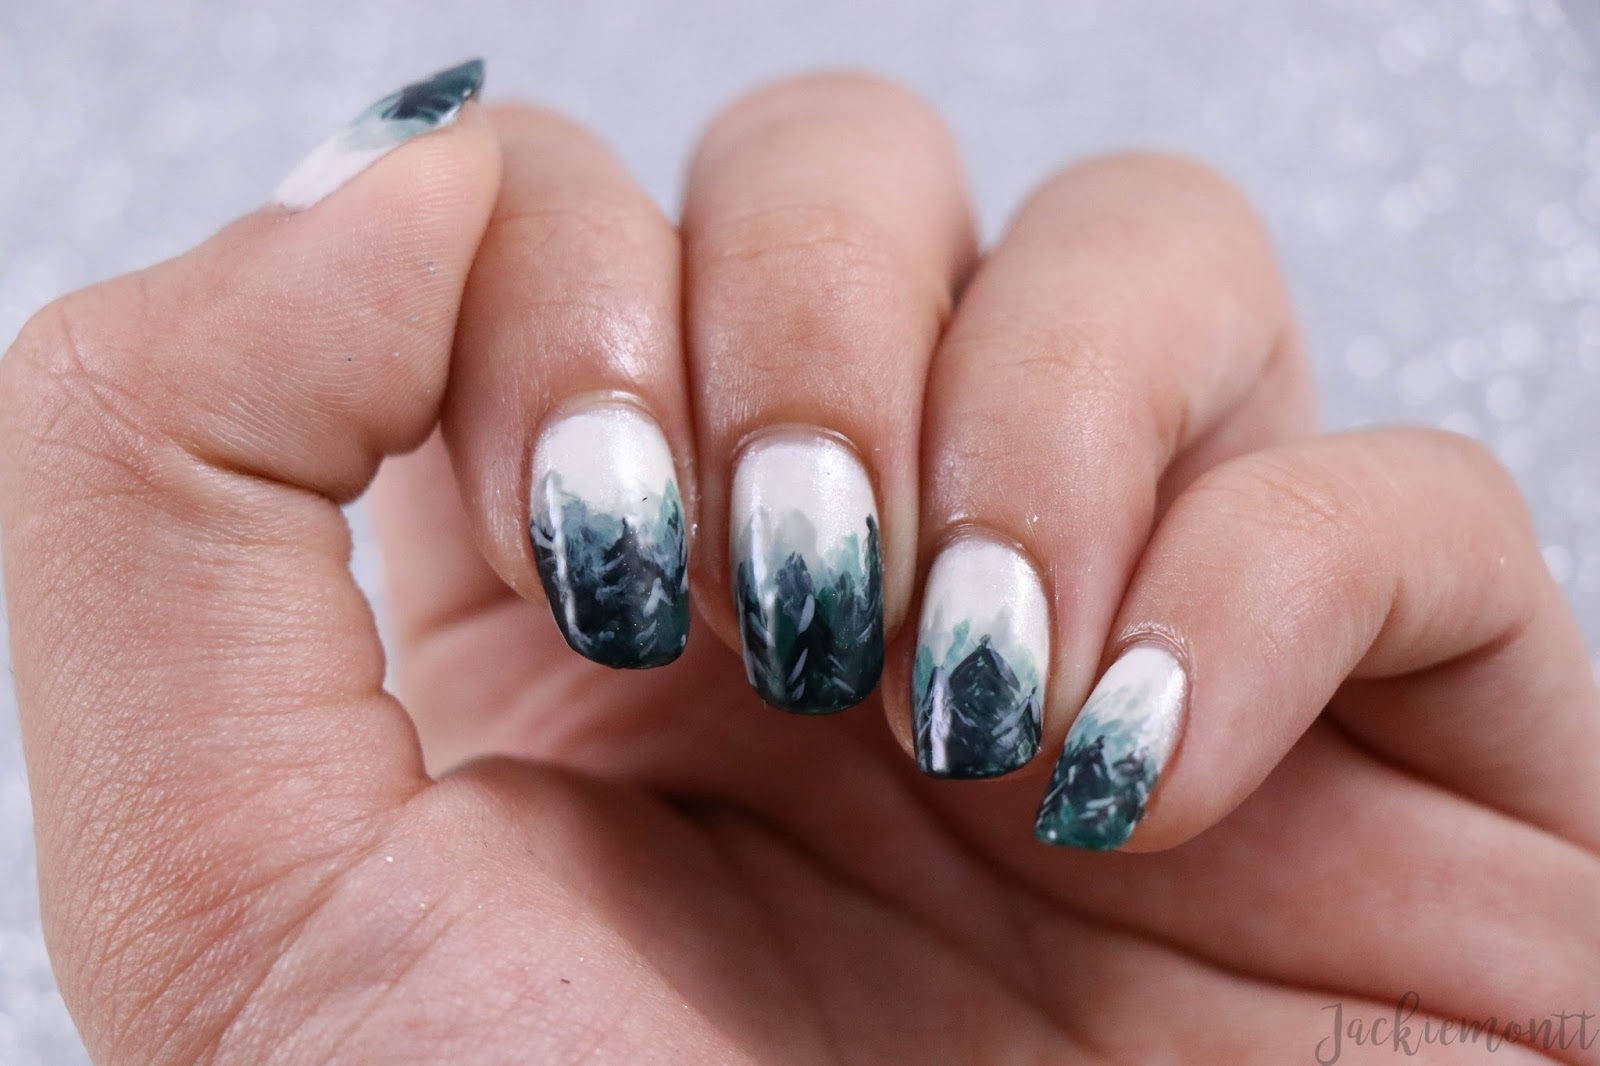 Jackiemontt Foggy Forest Winter Ombre Nail Art